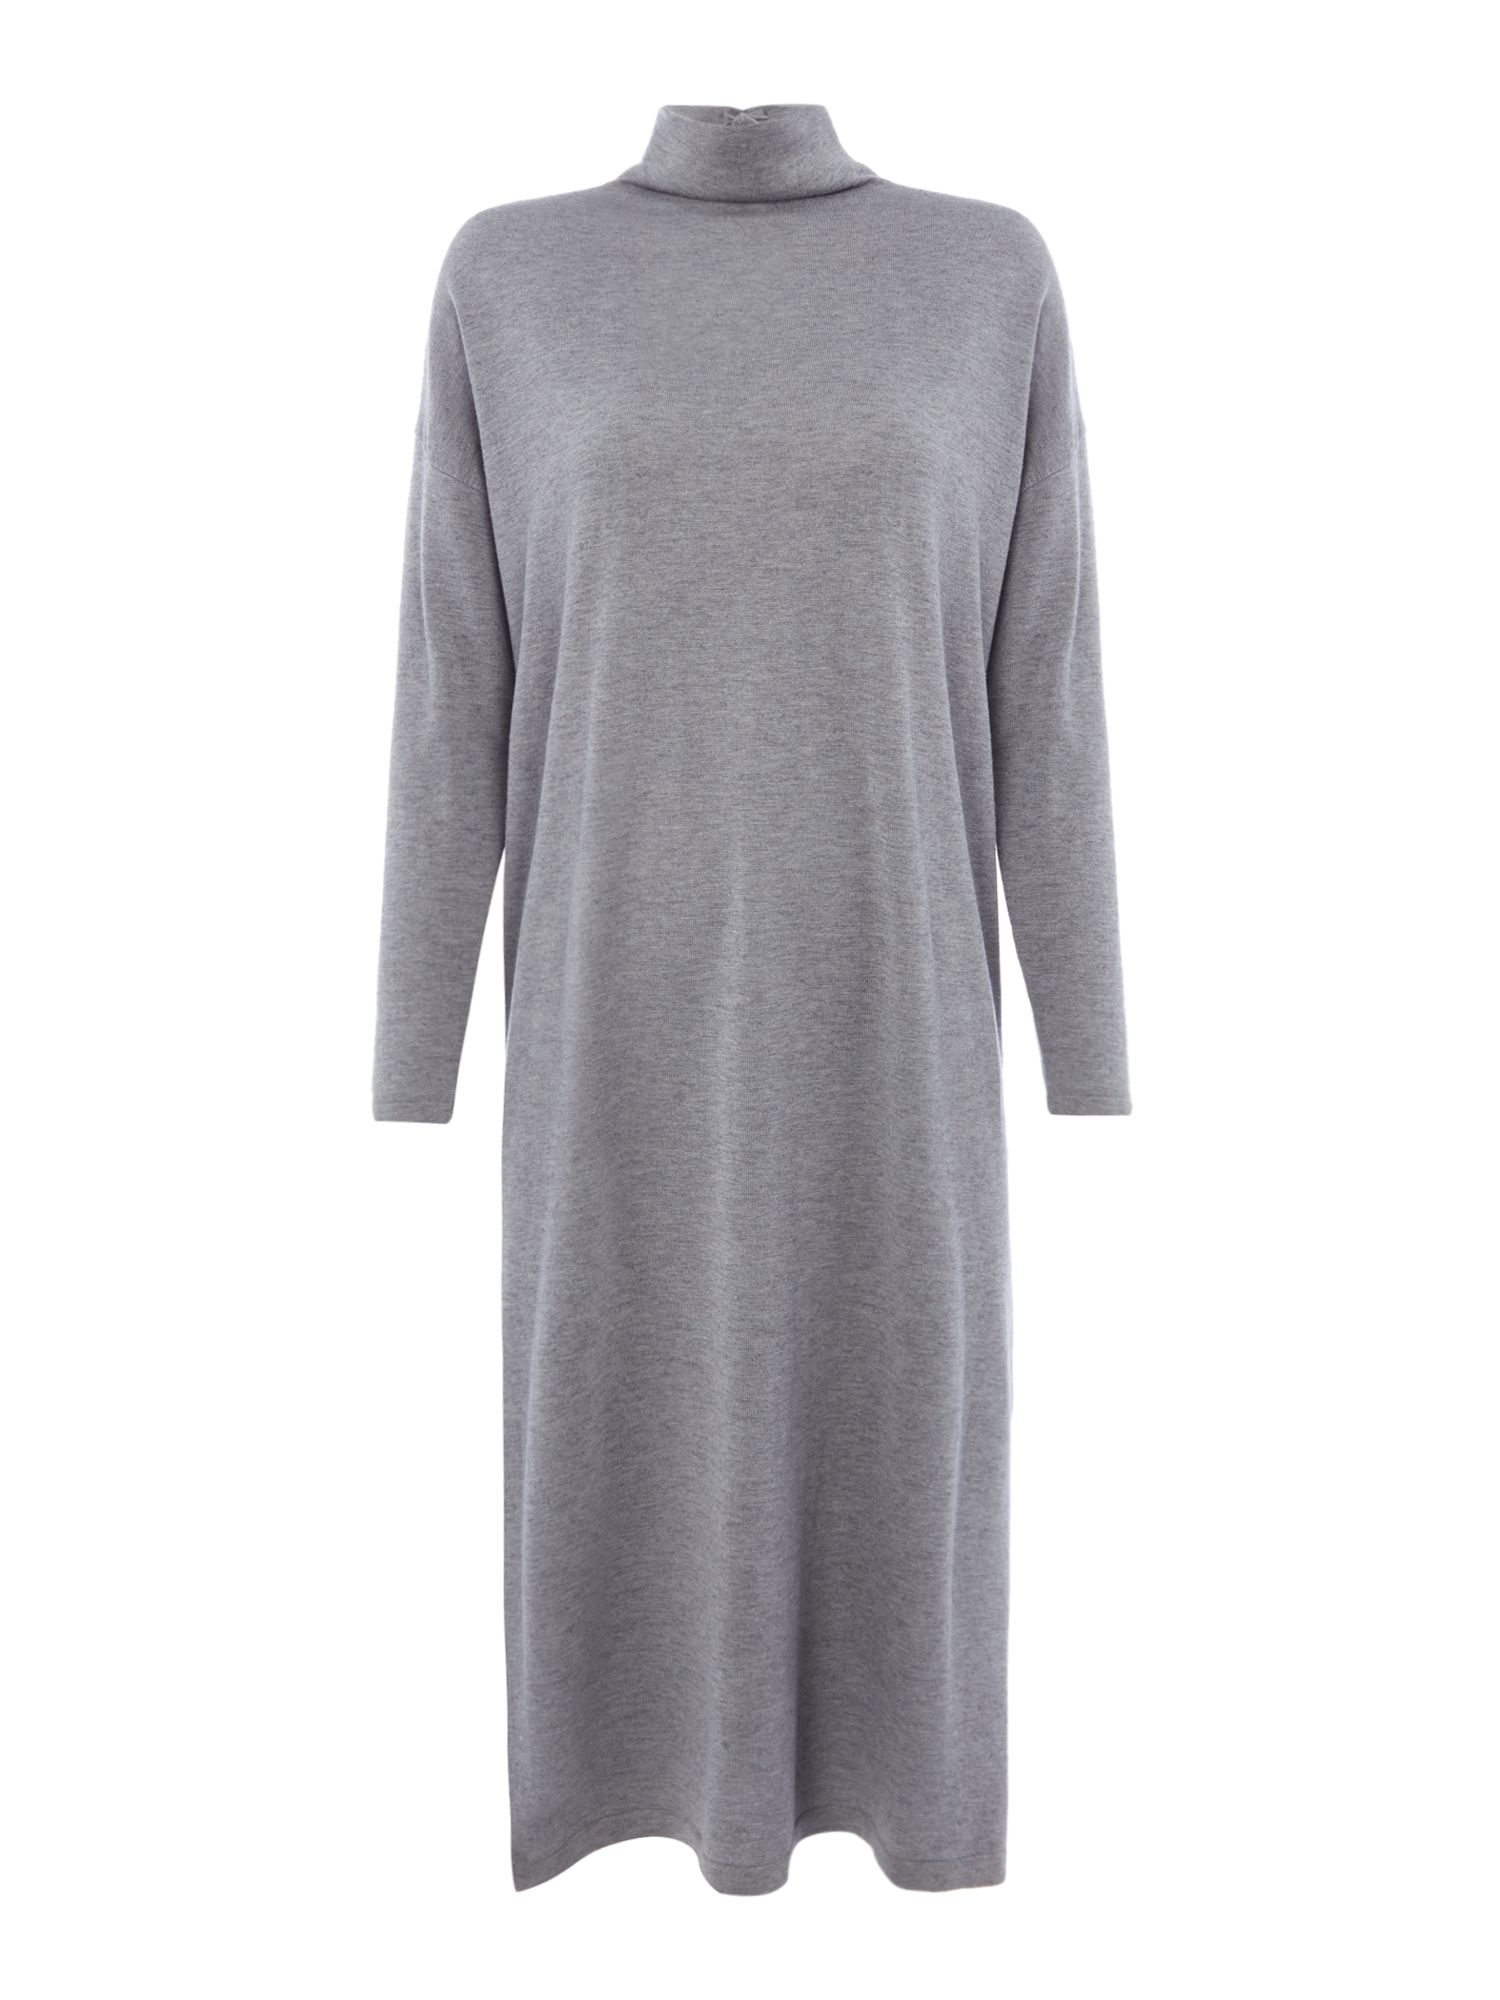 Max Mara Weekend Argo knitted dress with tie waist detail, Grey